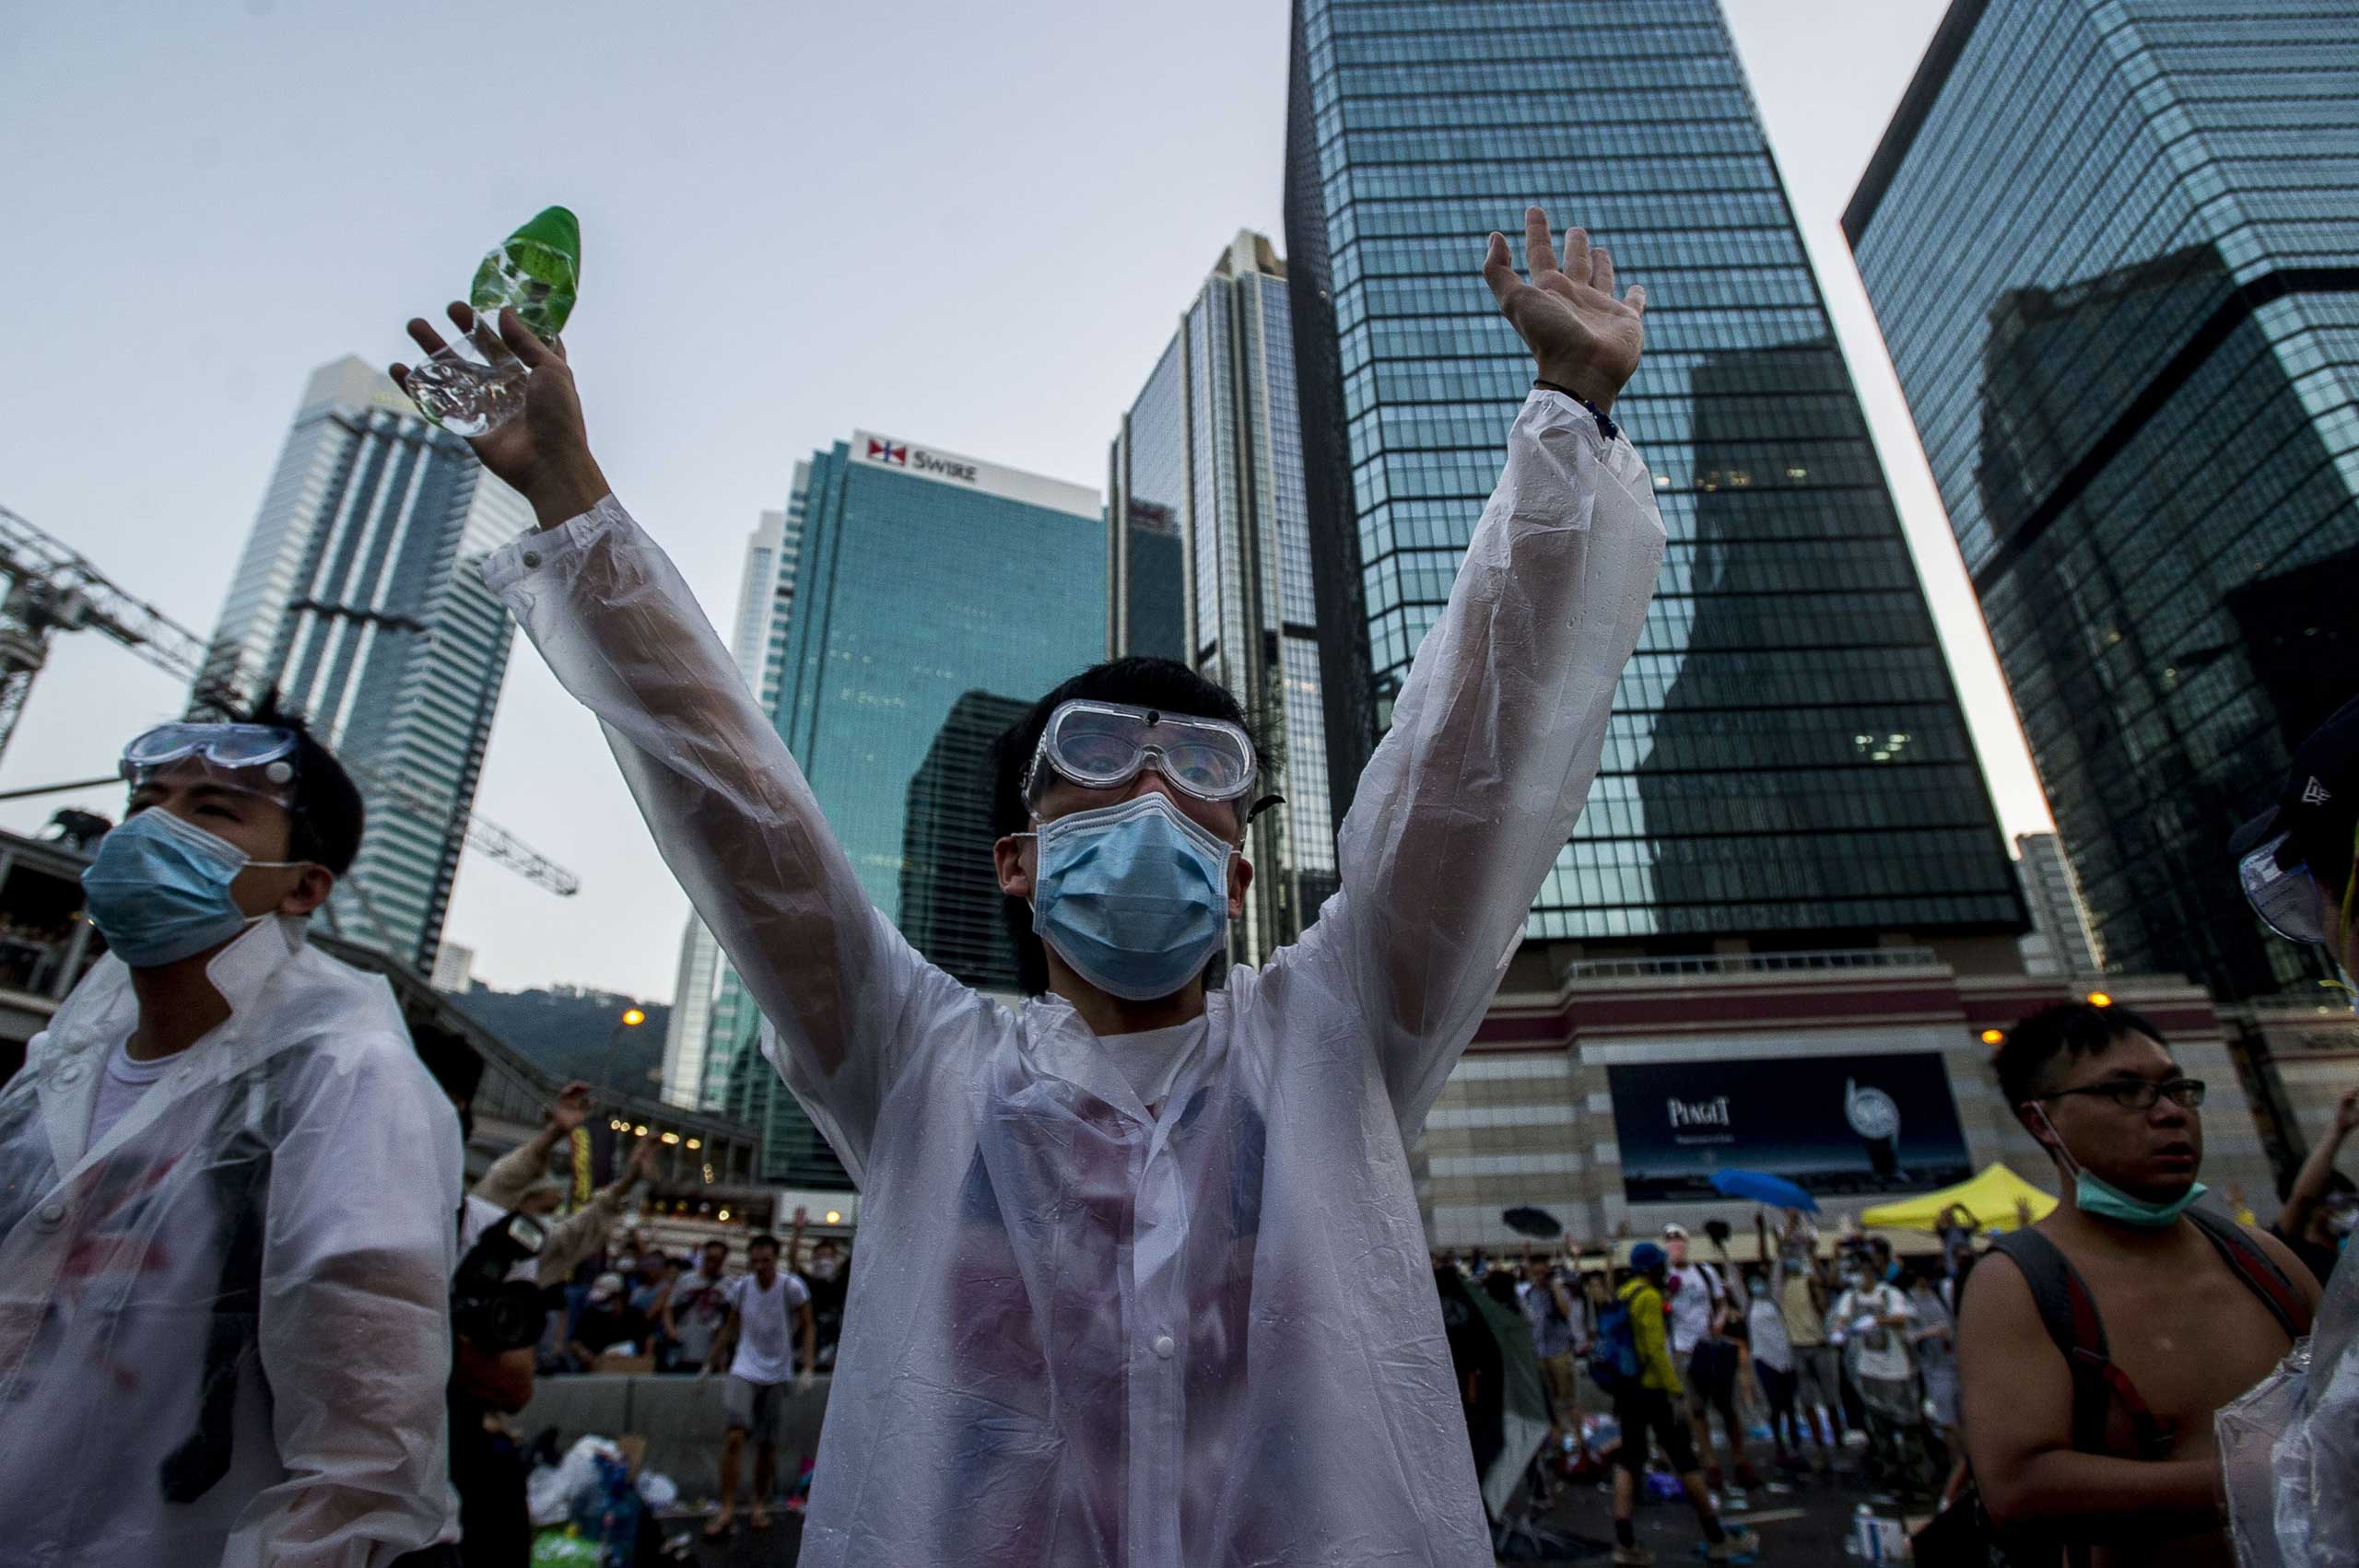 A pro-democracy demonstrator wearing a mask and goggles to protect against pepper spray and tear gas gestures during a rally near the Hong Kong government headquarters on Sept. 28, 2014.